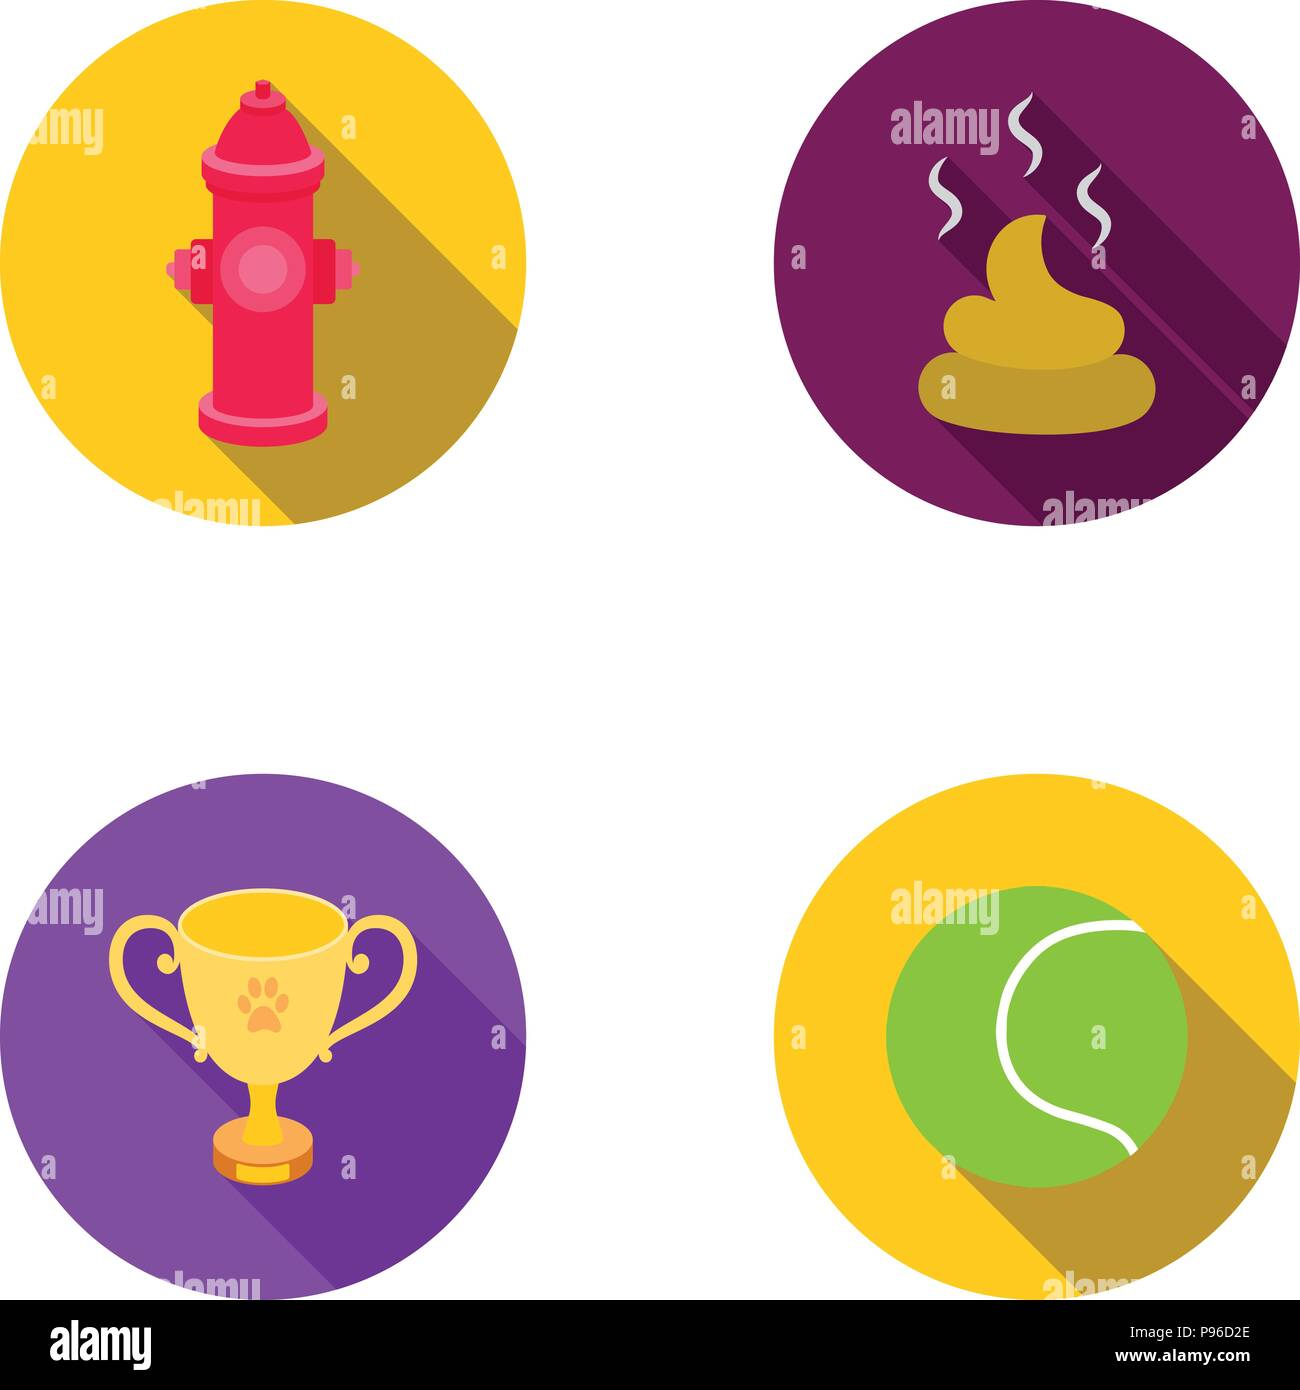 Tennis Ball Game Hydrant Fire Cup Fecesg Set Collection Icons